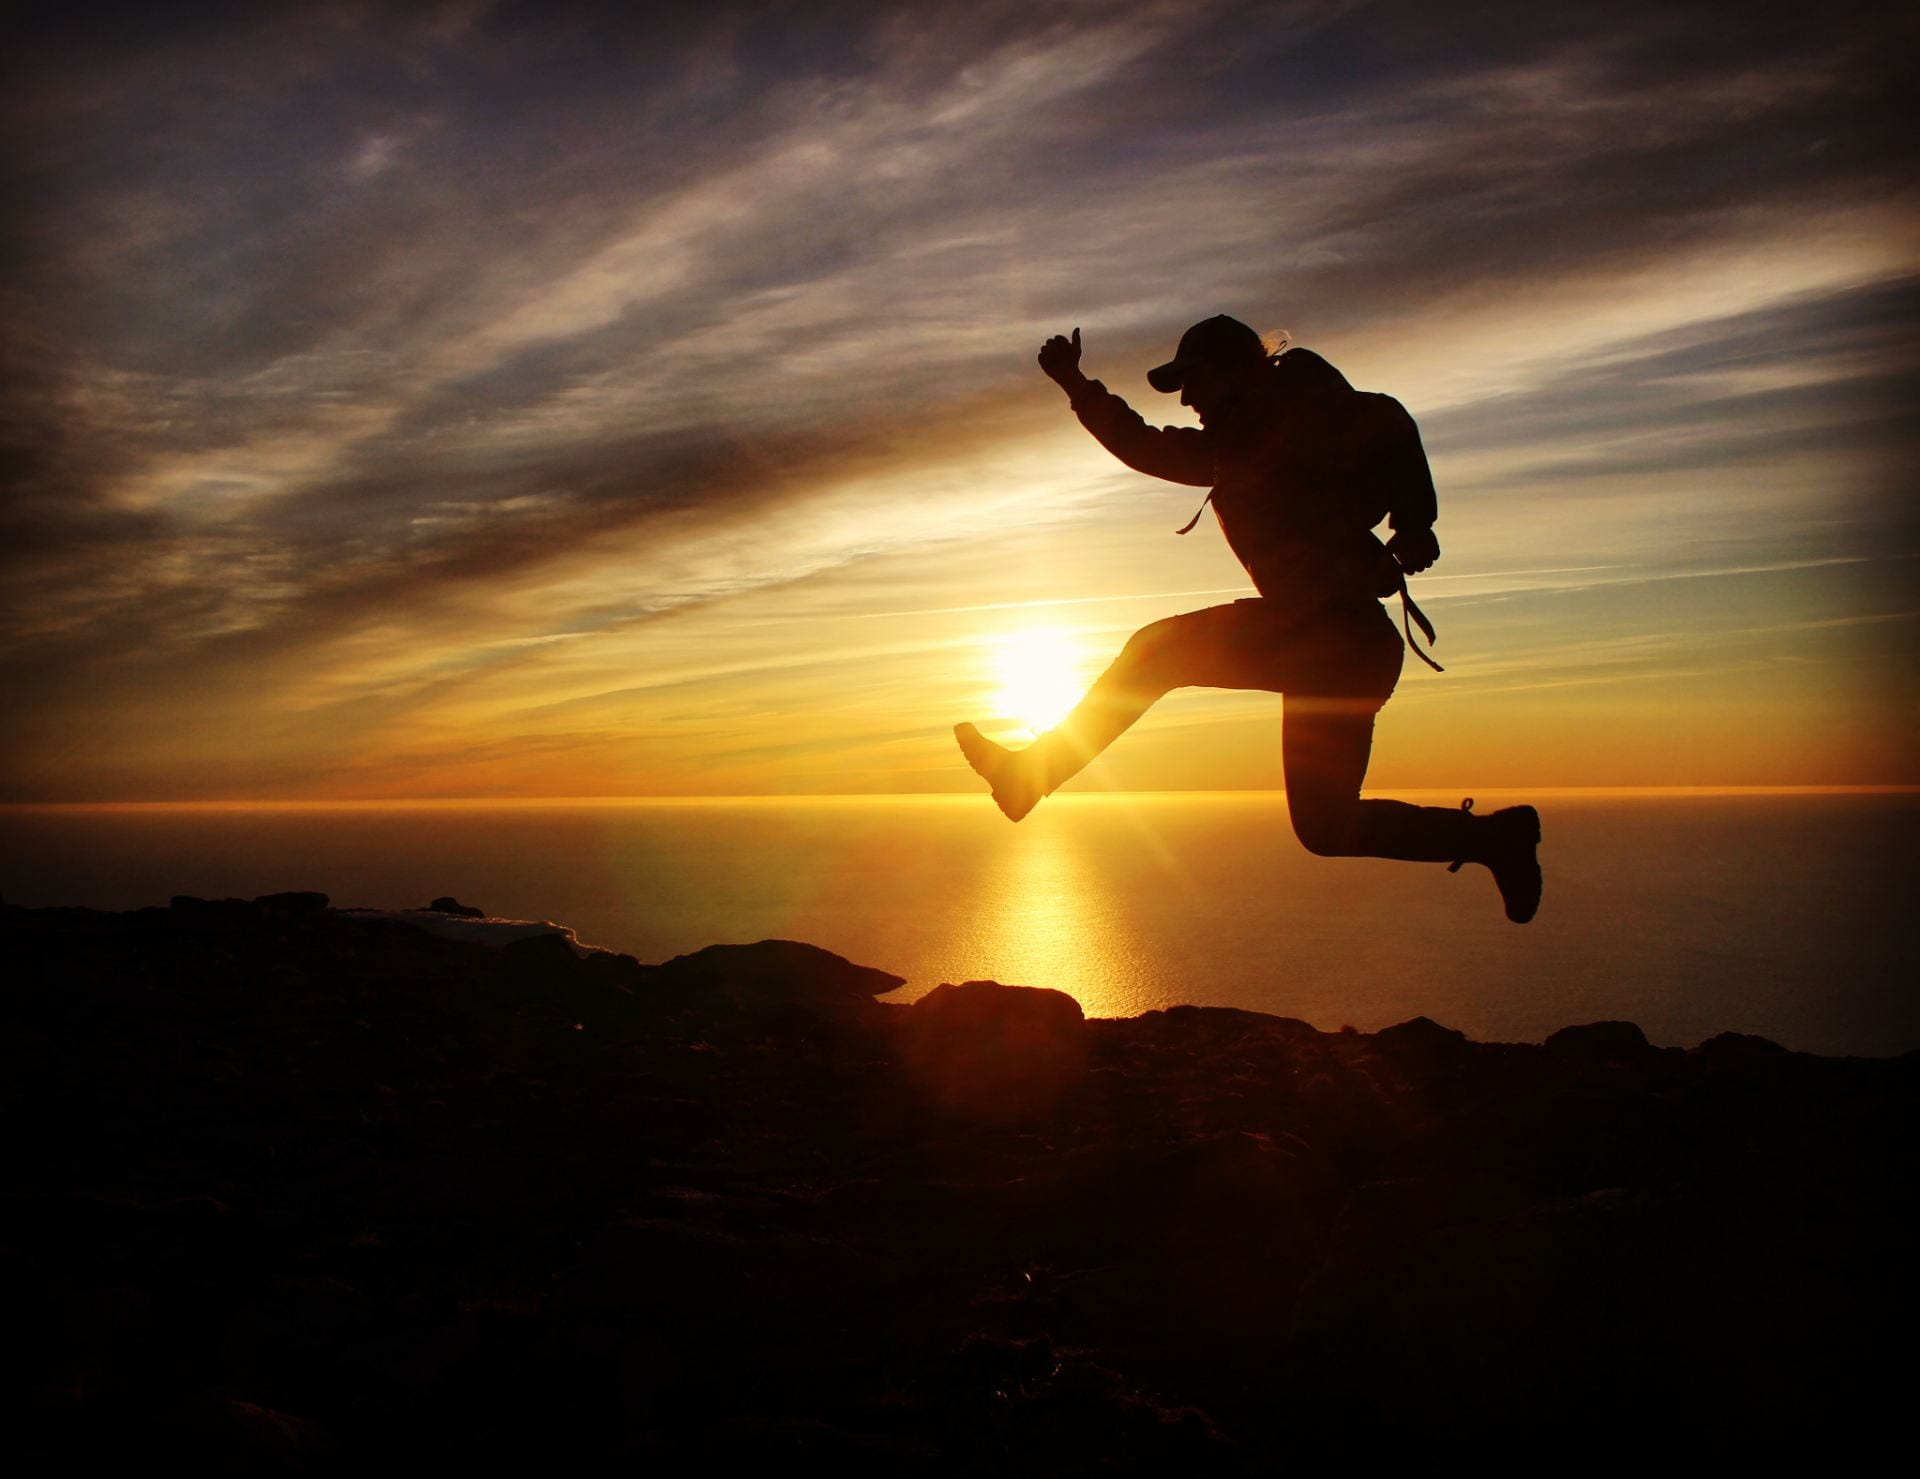 A person in a hat and backpack jumping and giving a thumbs up, sillhouetted by a setting sun